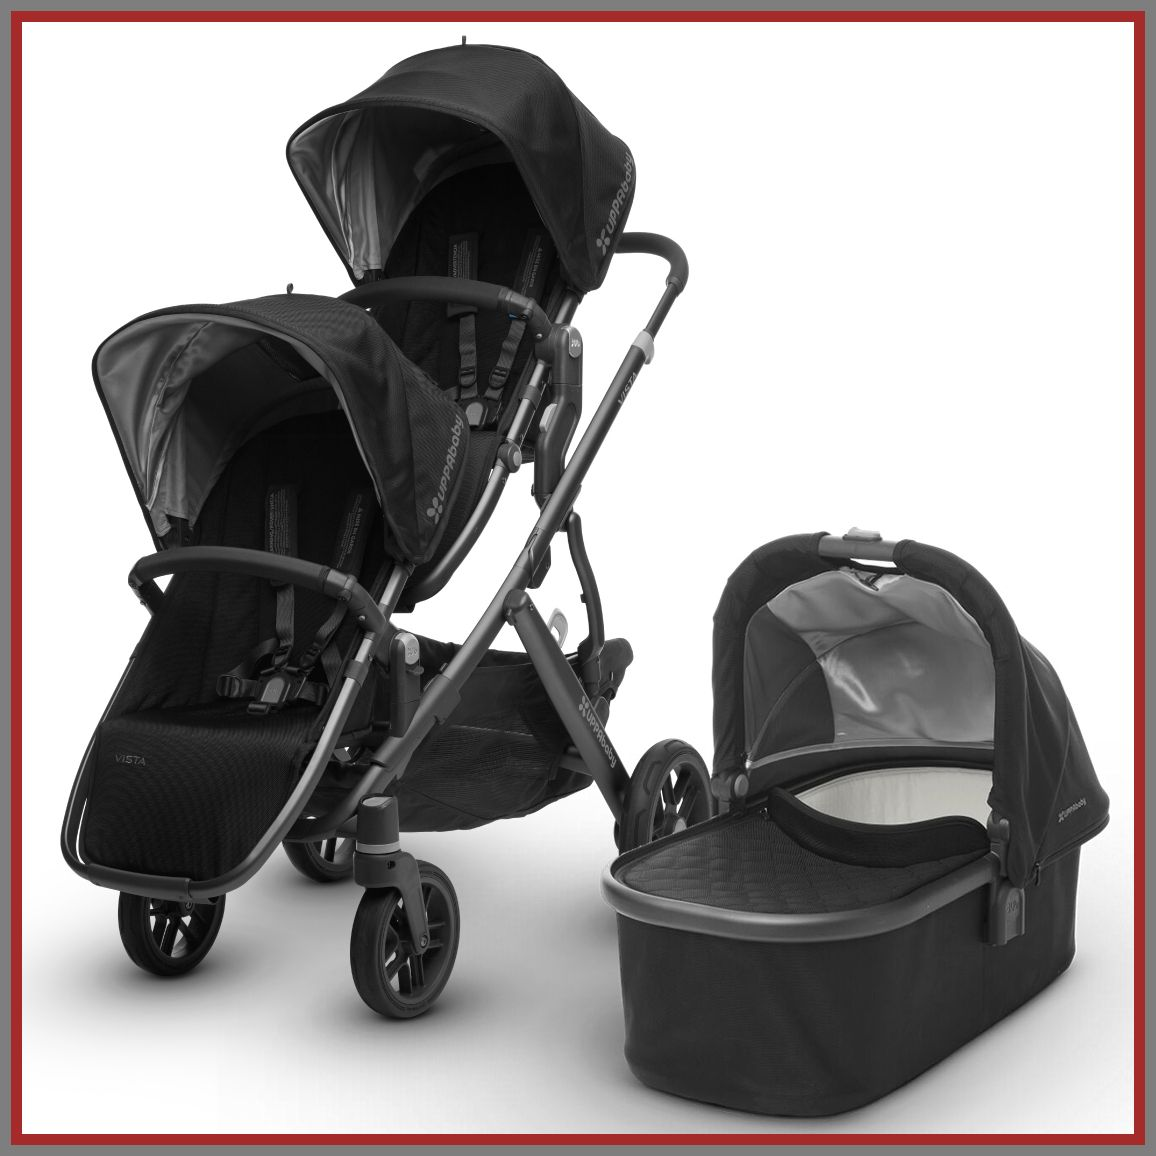 130 reference of uppababy vista stroller black friday sale